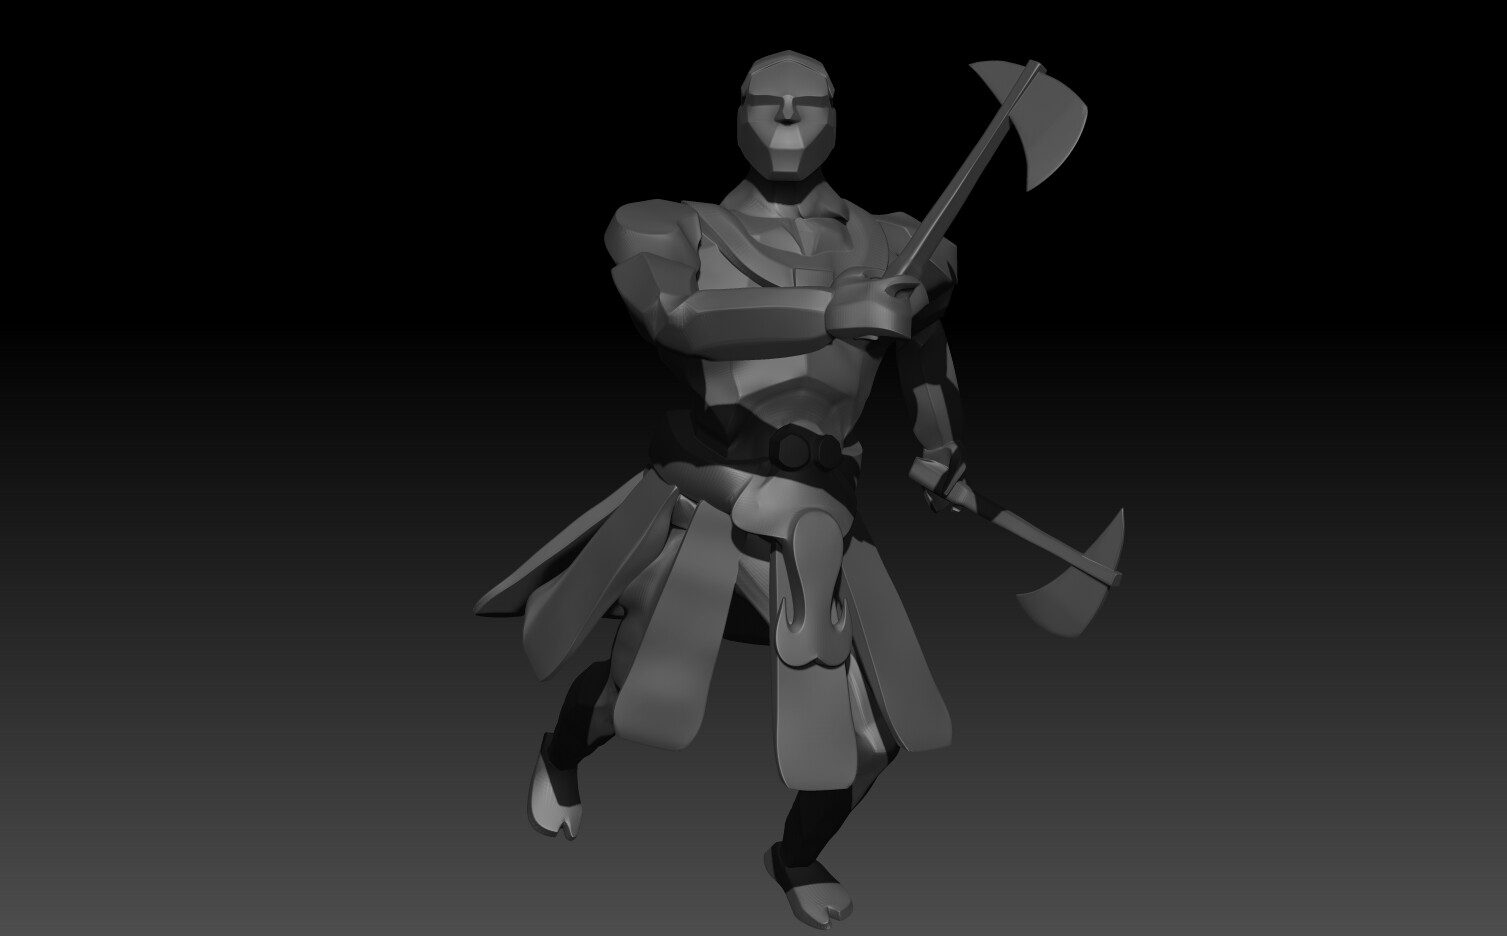 Warrior Zbrush Render